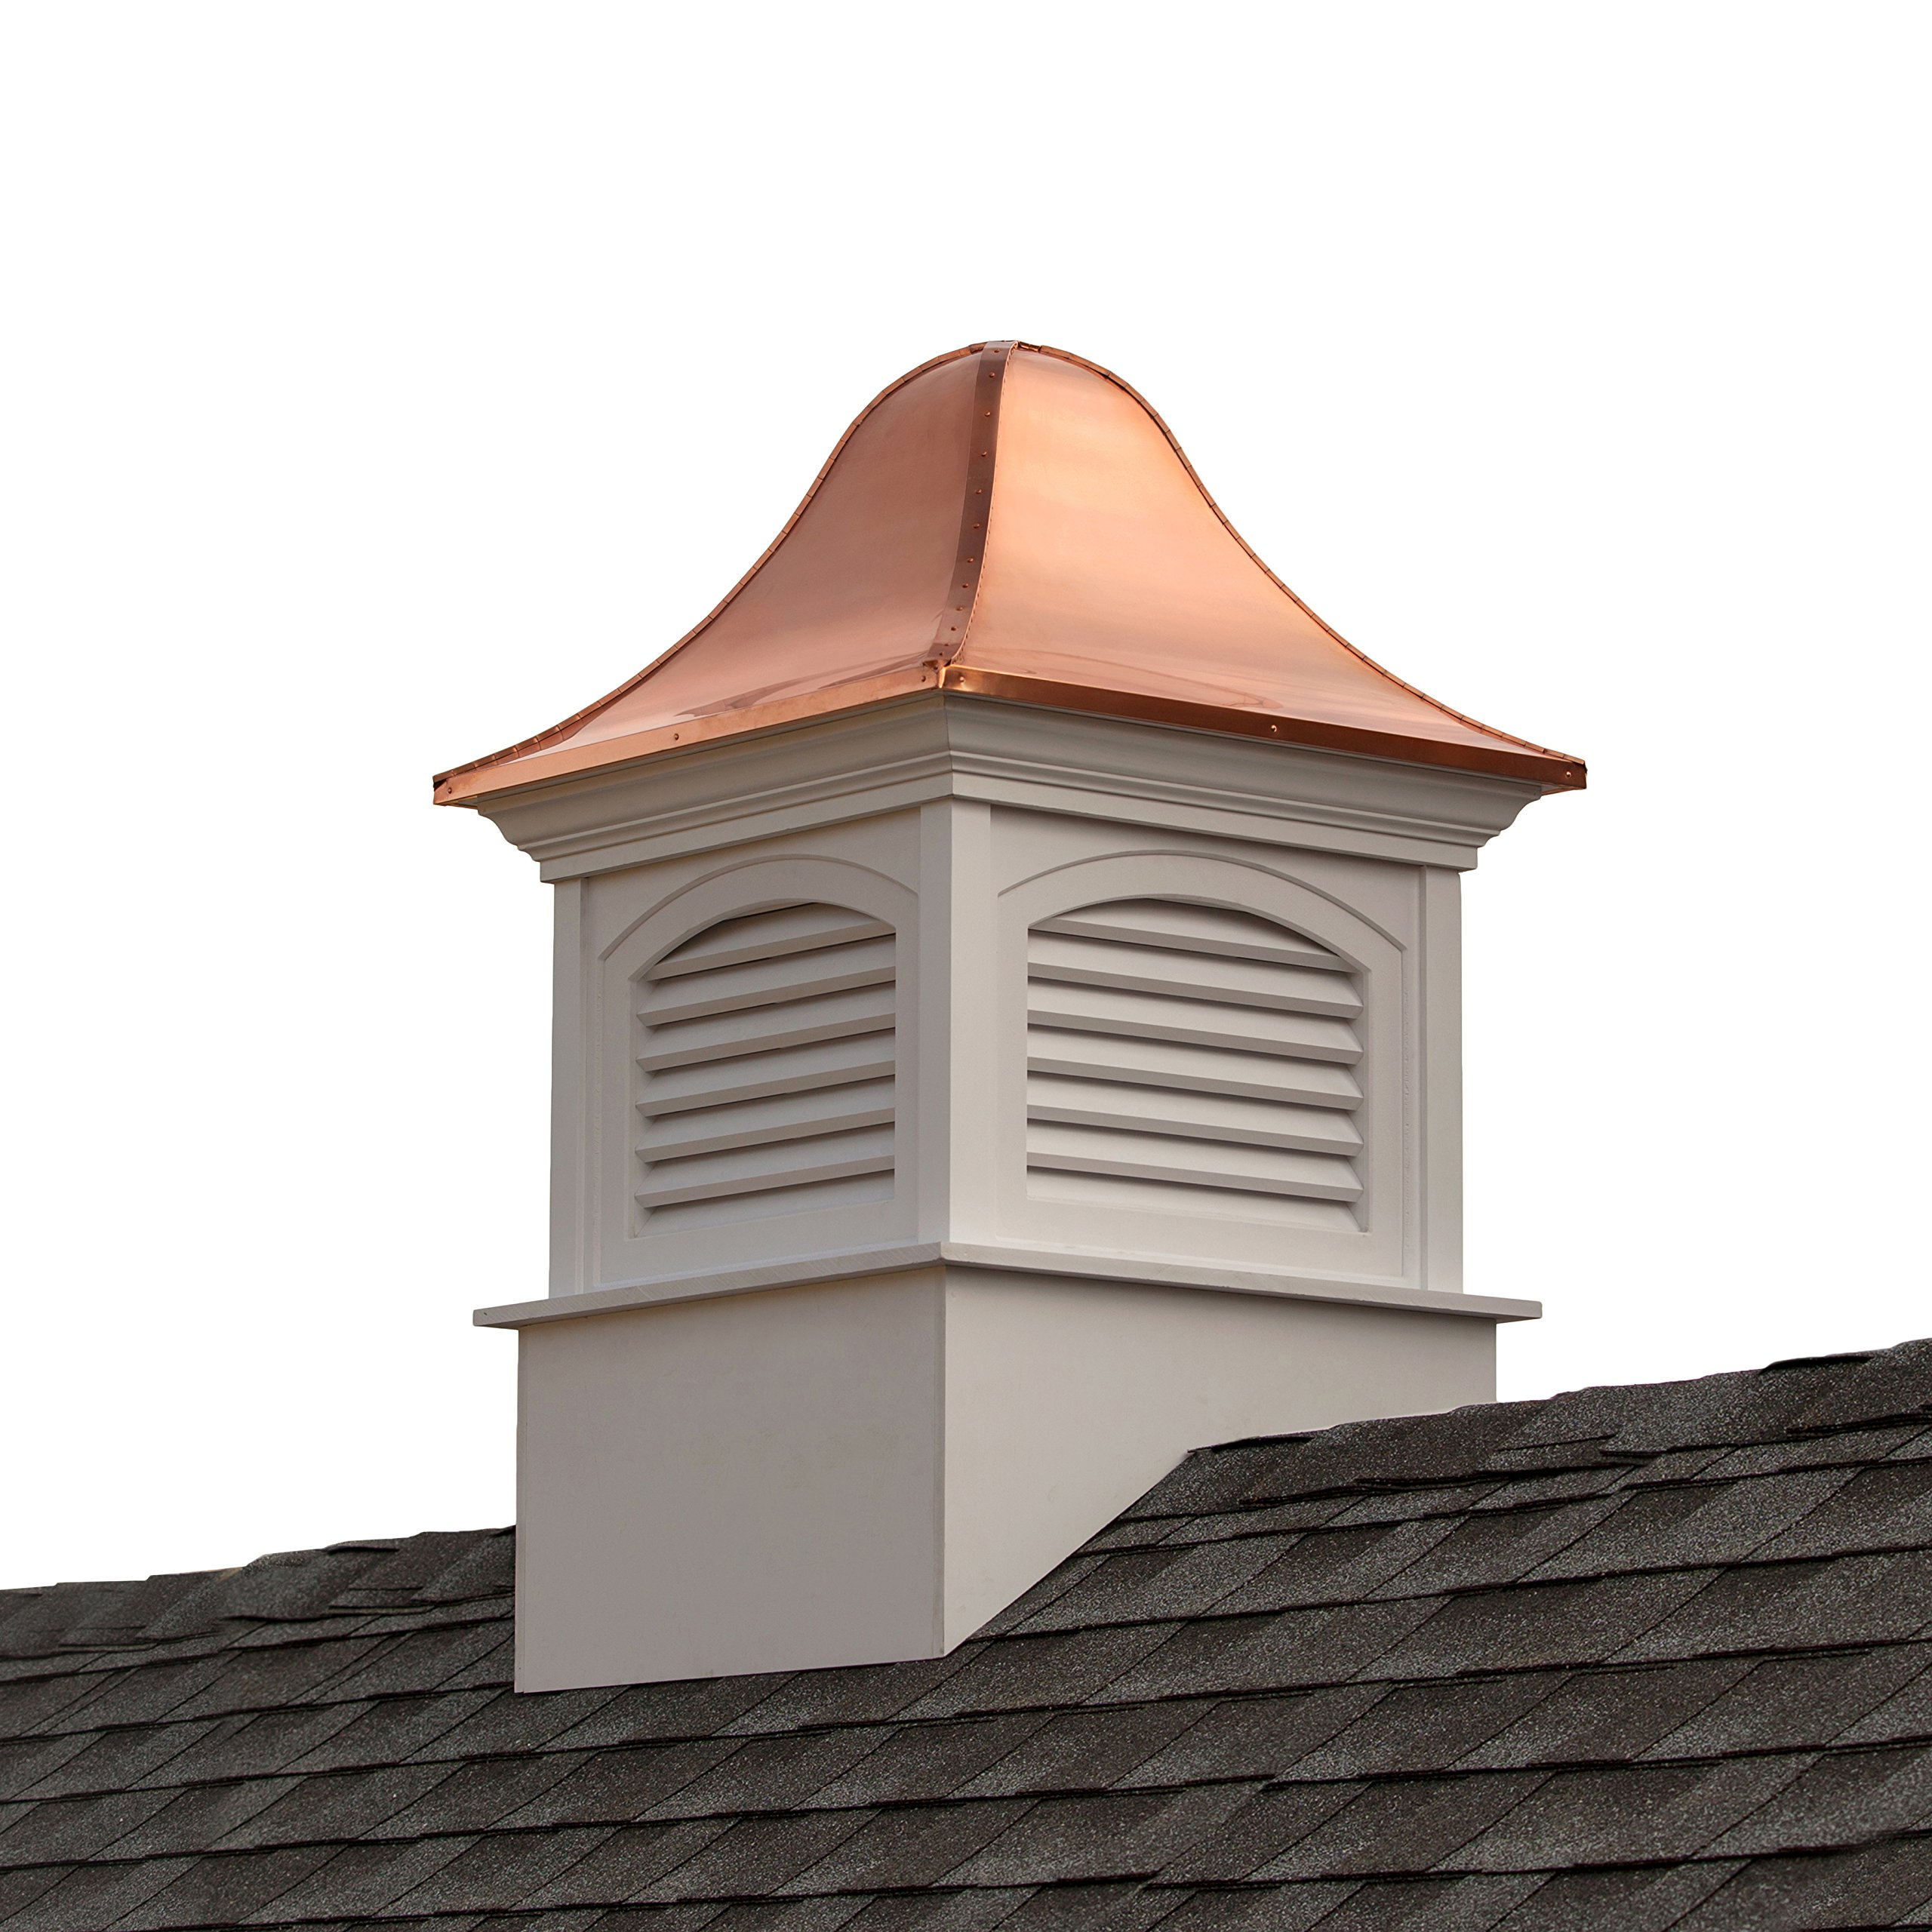 Fairfield Vinyl Cupola with Copper Roof 30'' x 49'' by Good Directions